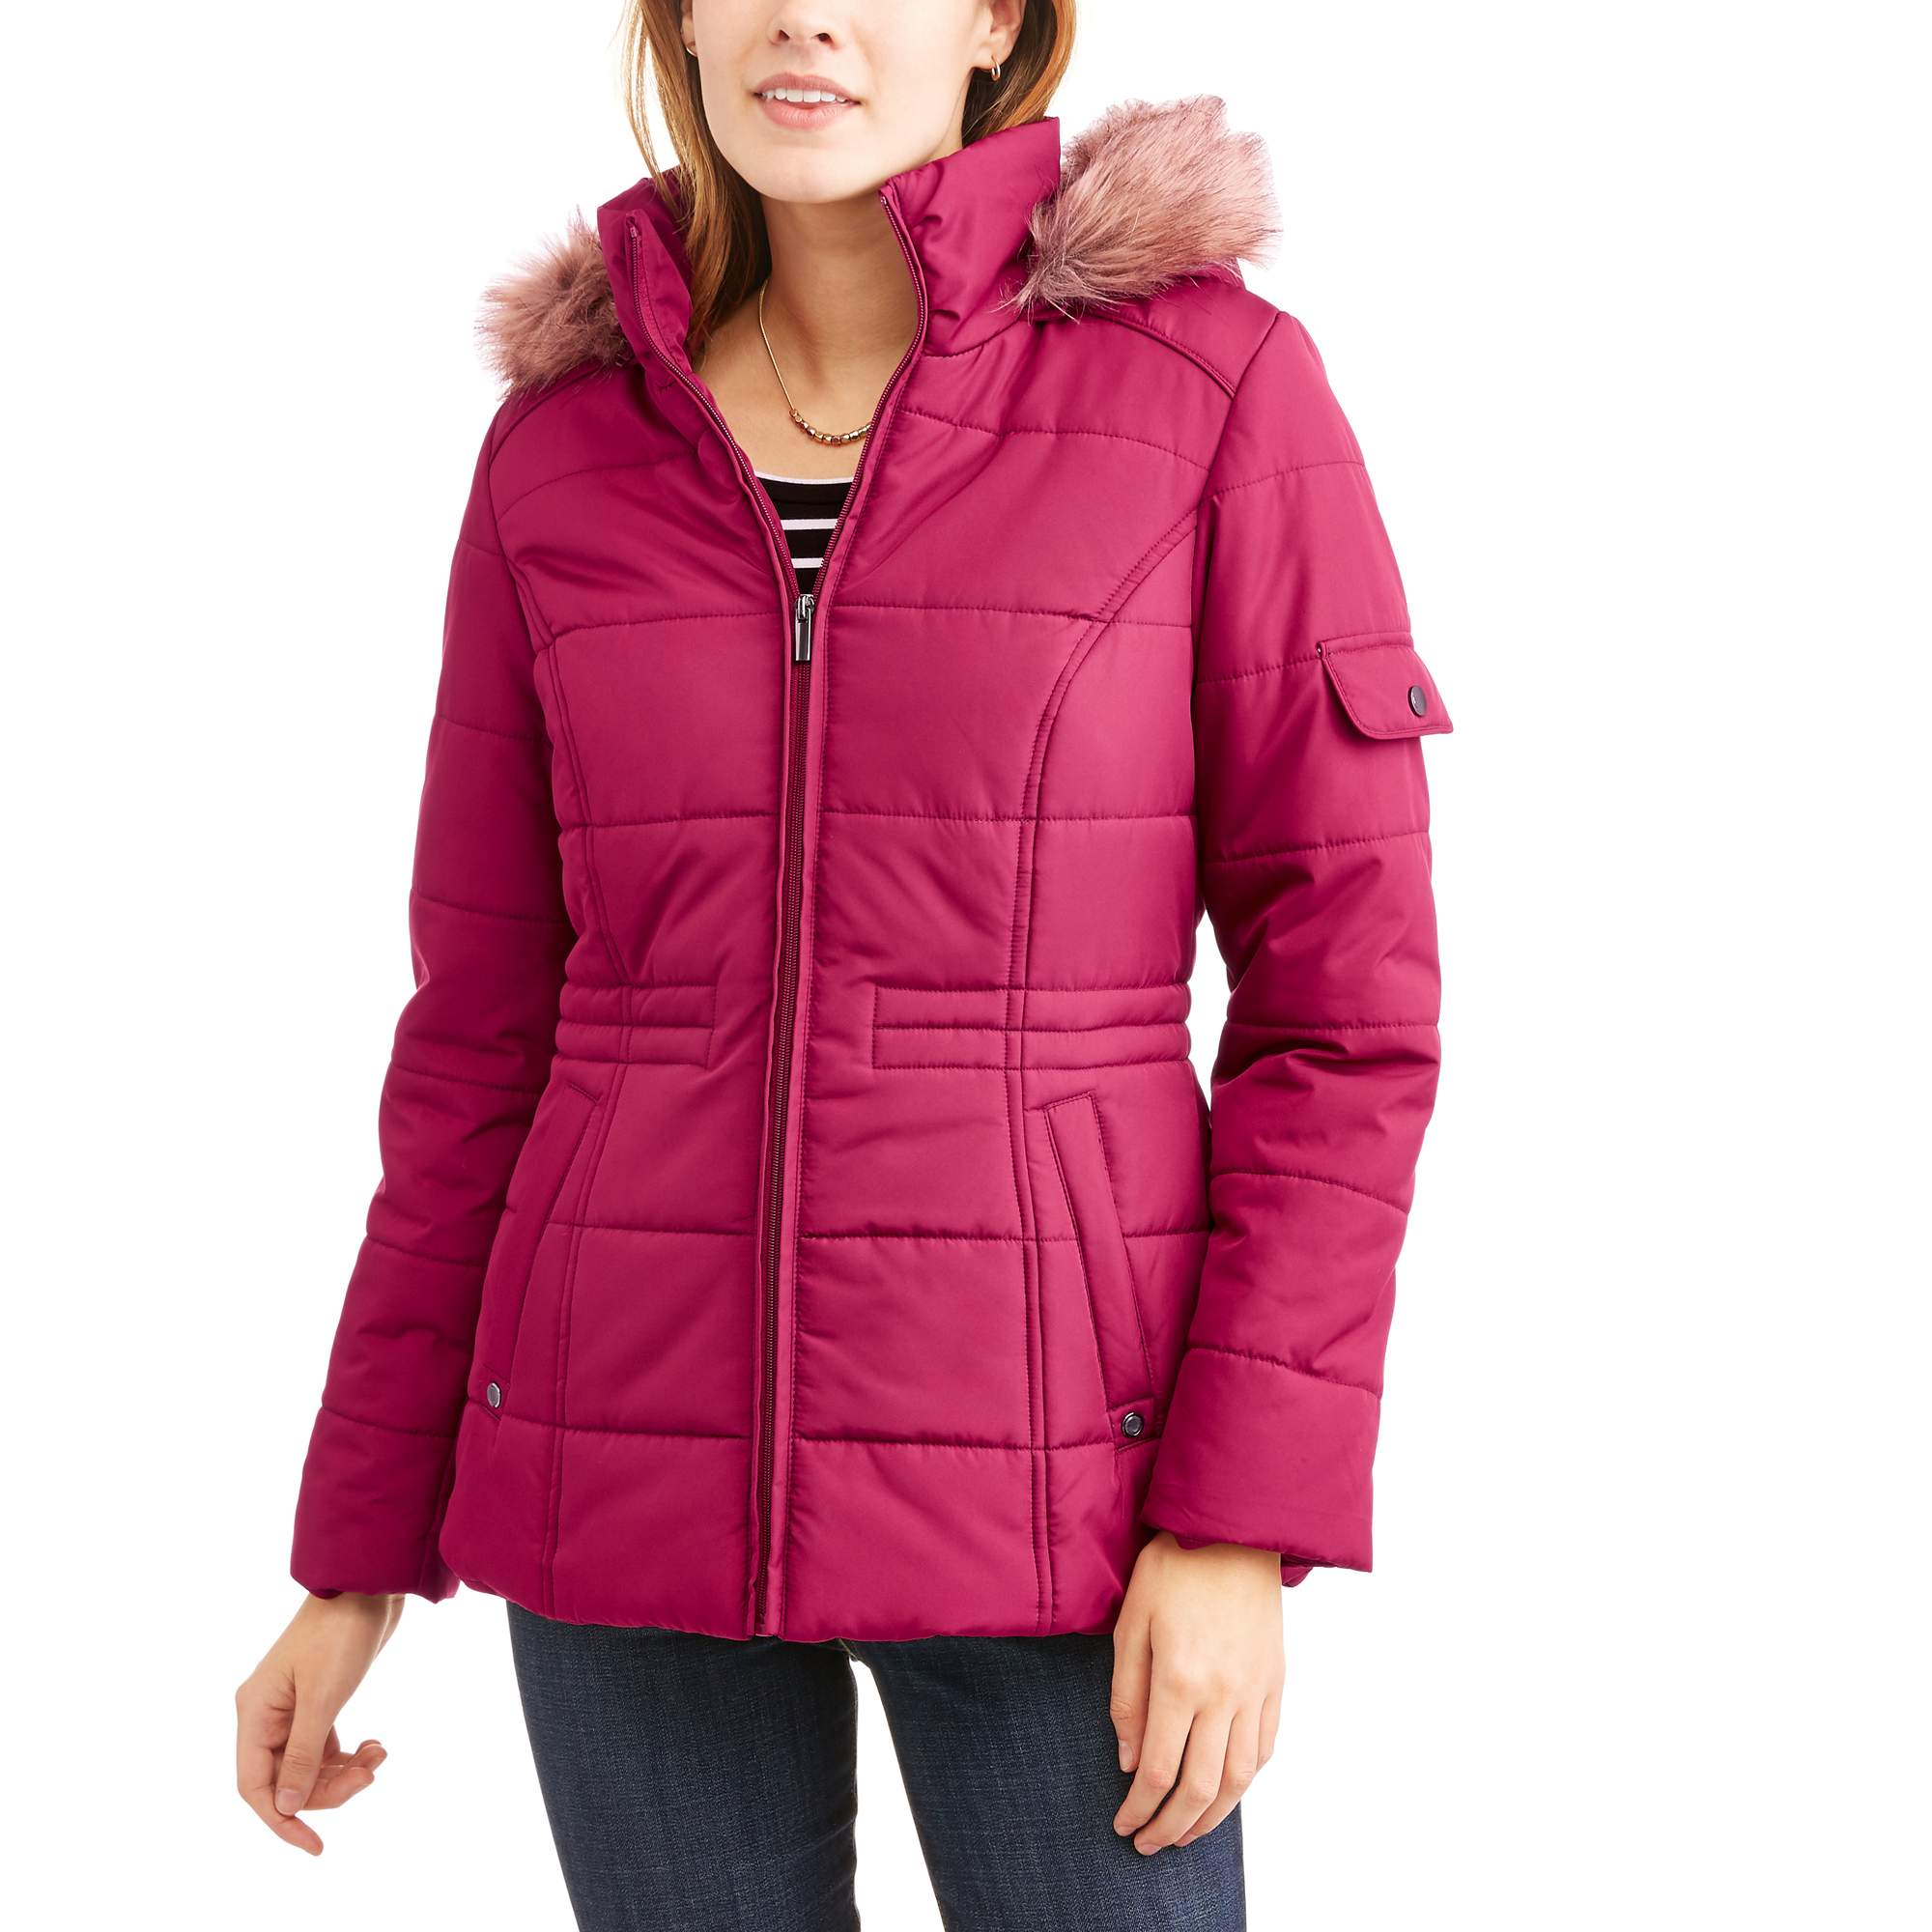 Faded Glory Women's Quilted Puffer Jacket With Faux Fur-Trim Hood